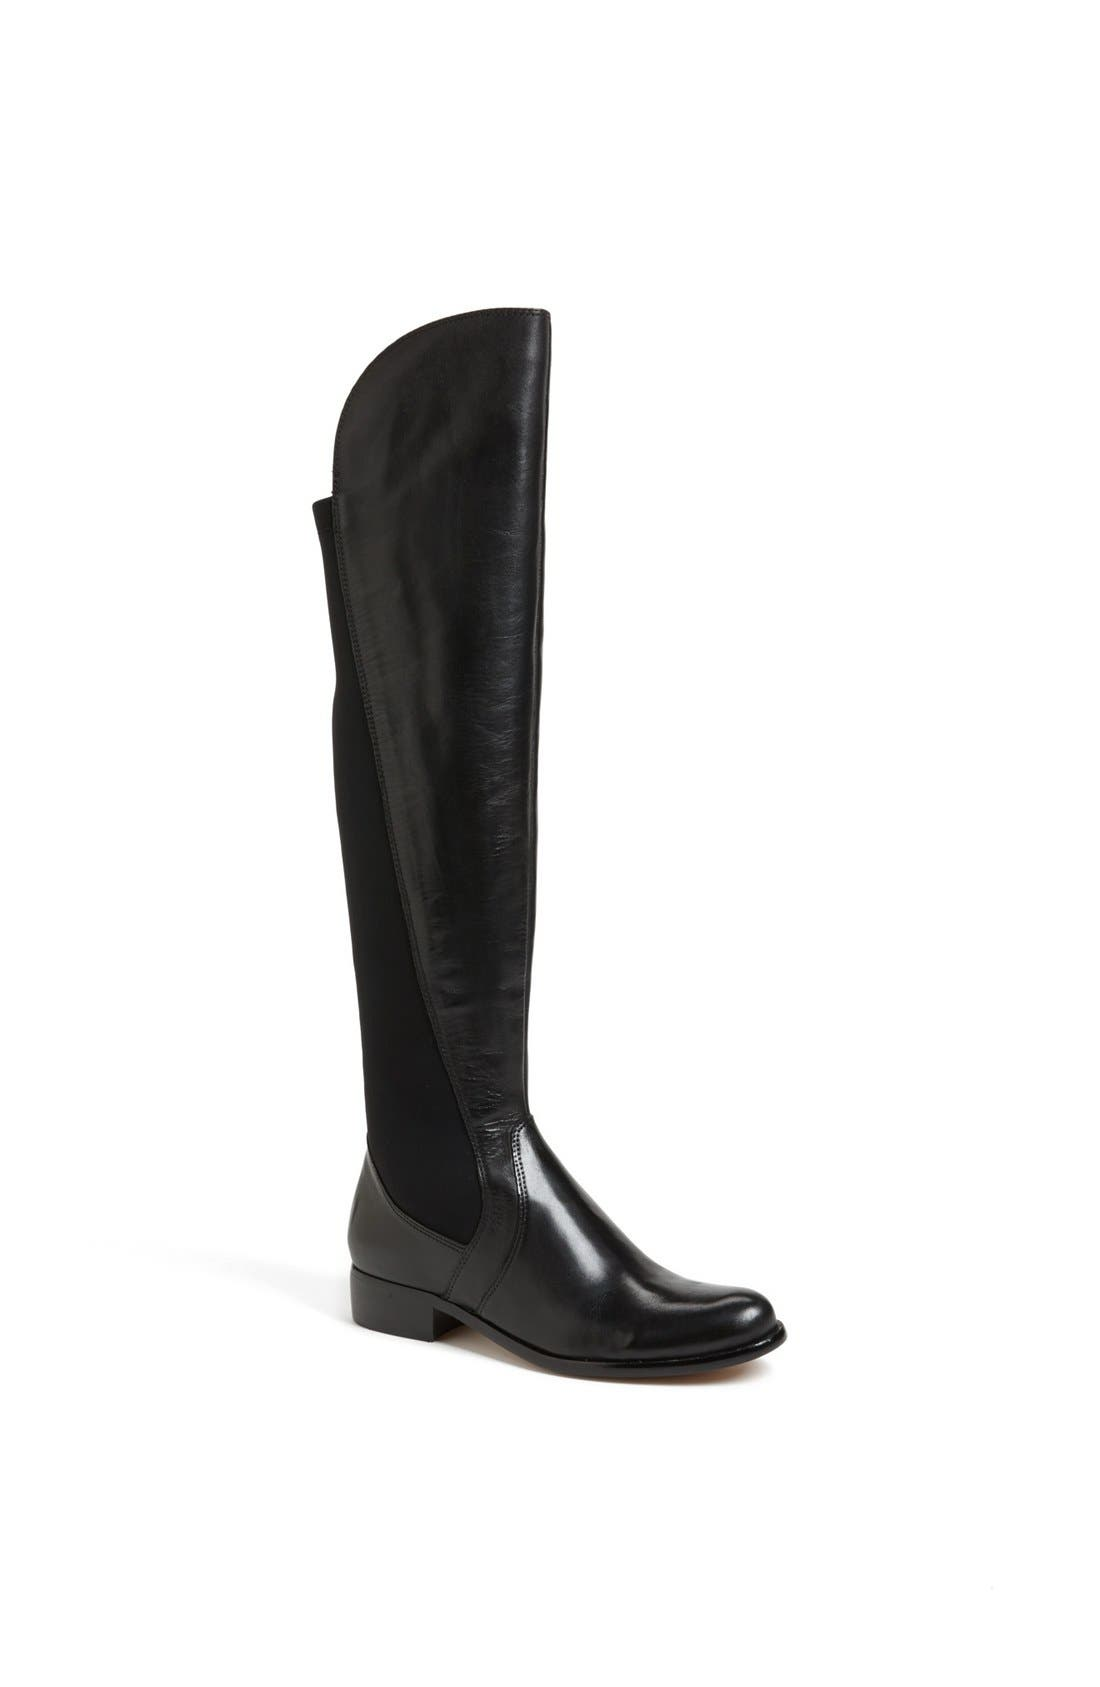 Alternate Image 1 Selected - Corso Como 'Swift' Over the Knee Boot